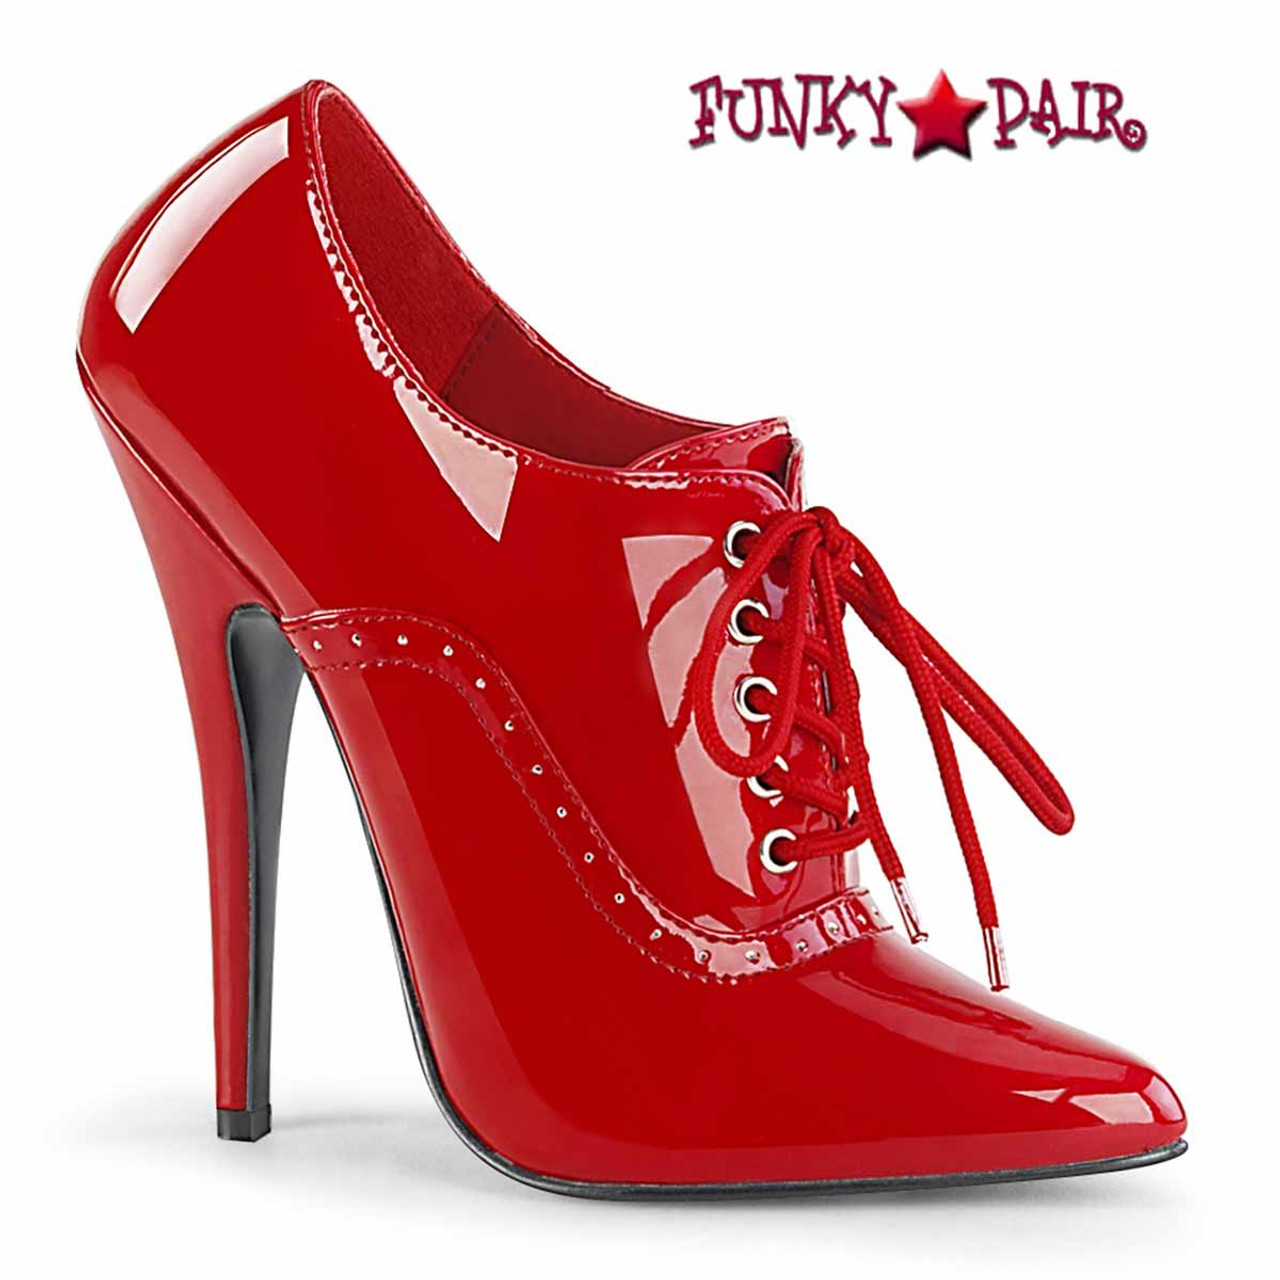 Domina 460, 6 Inch Fetish Oxford Pump by Devious